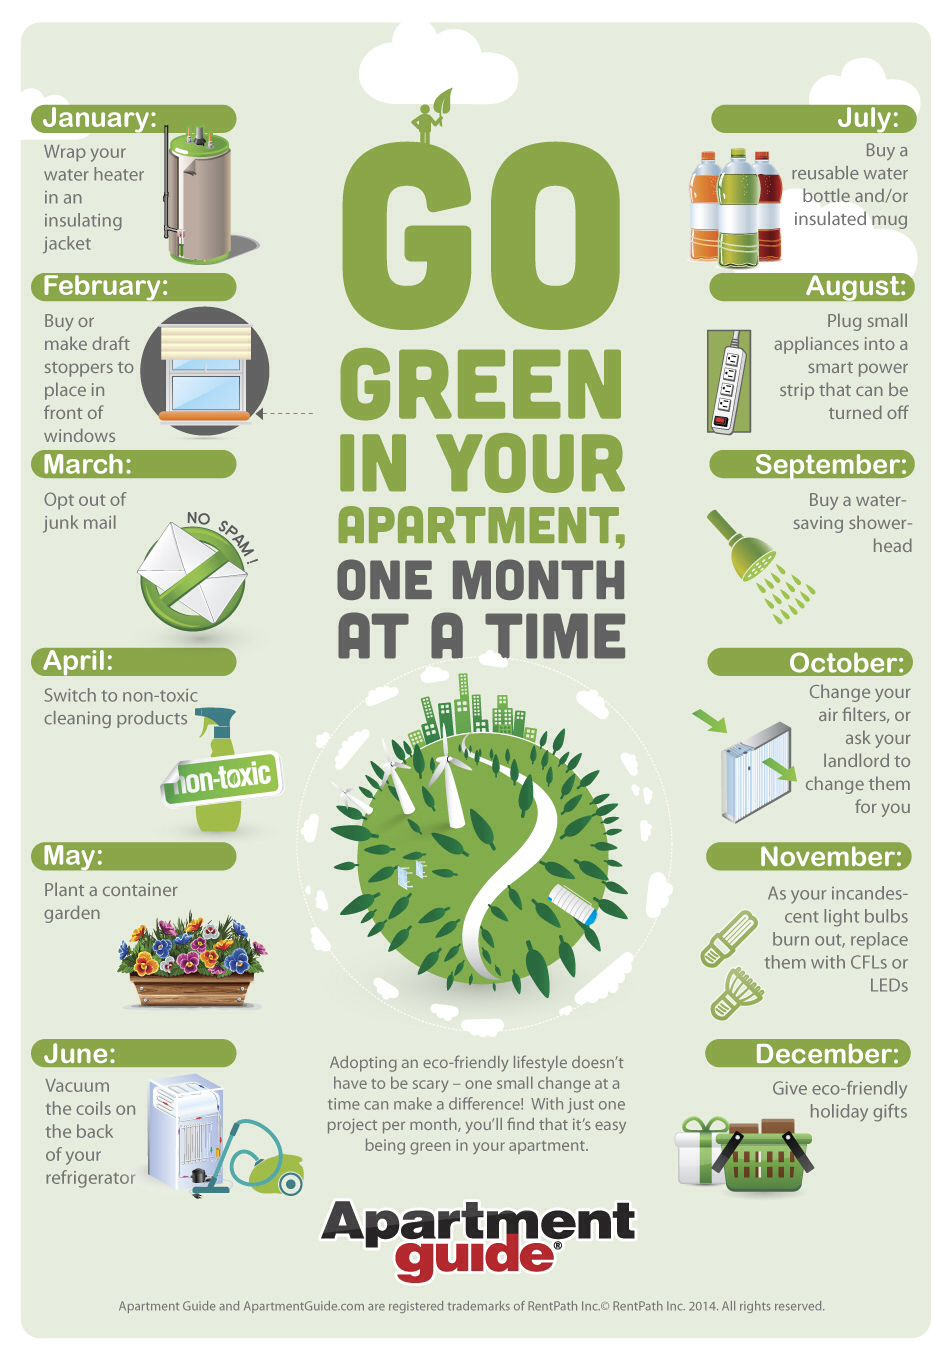 From Opting Out Of Junk Mail To Using Non Toxic Cleaning Products Here S How Go Green In Your Apartment One Month At A Time